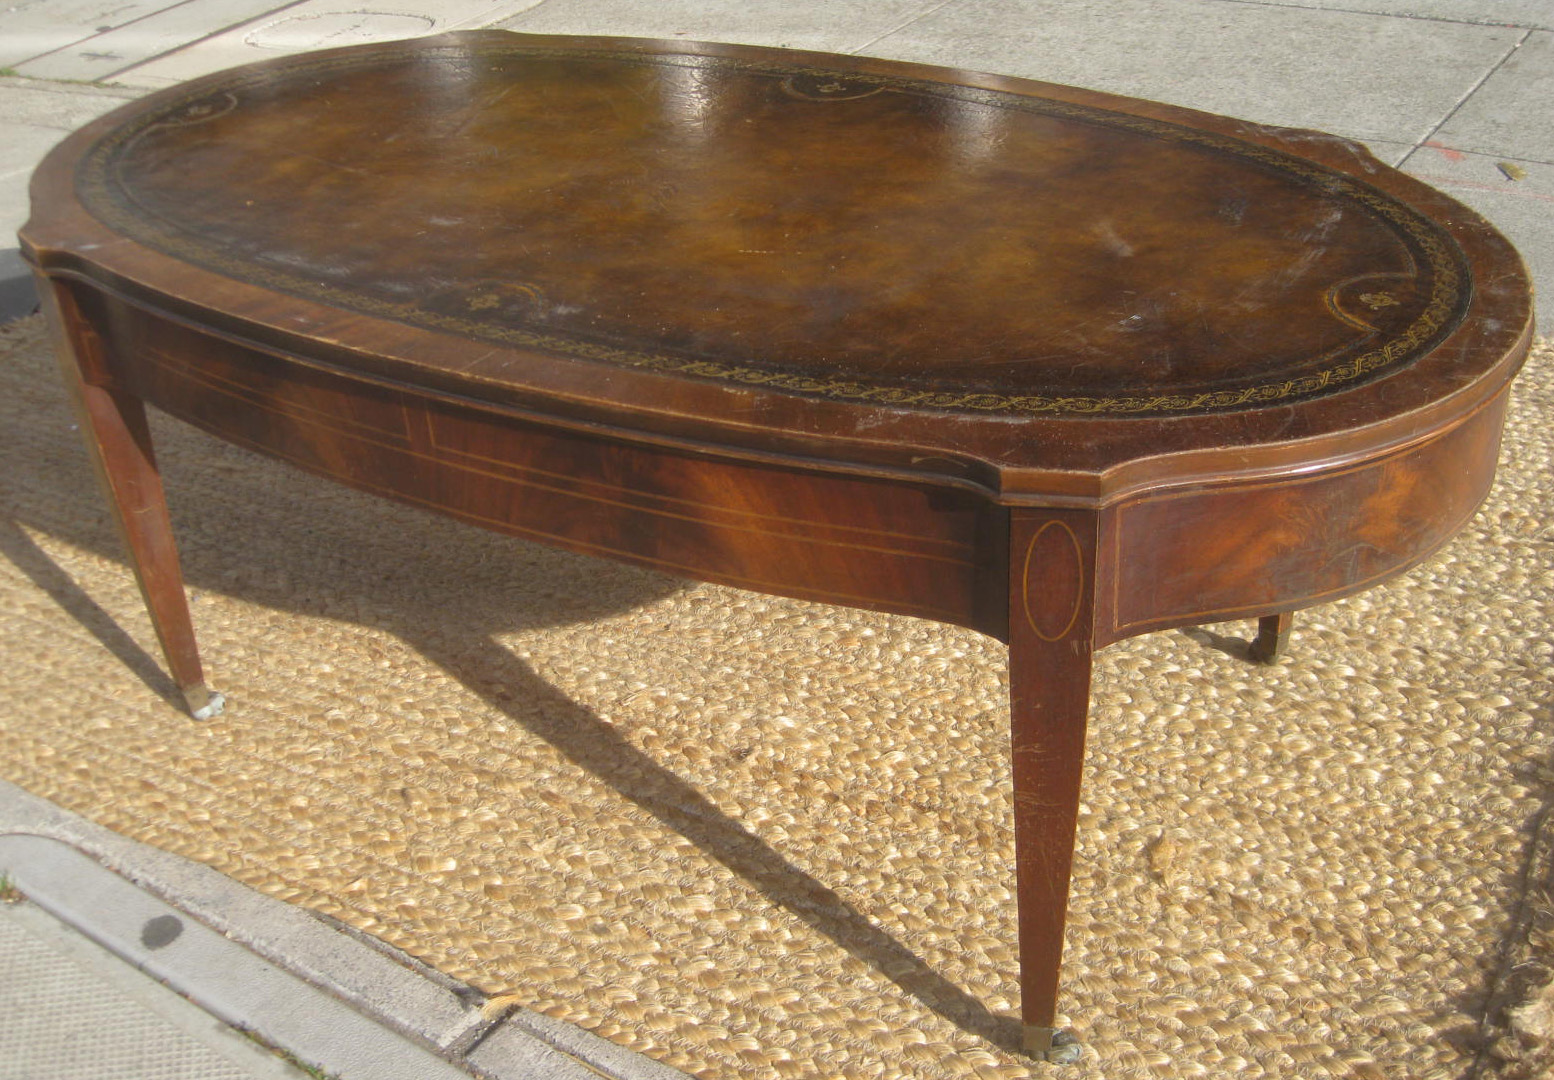 uhuru furniture collectibles sold leather top coffee table 60